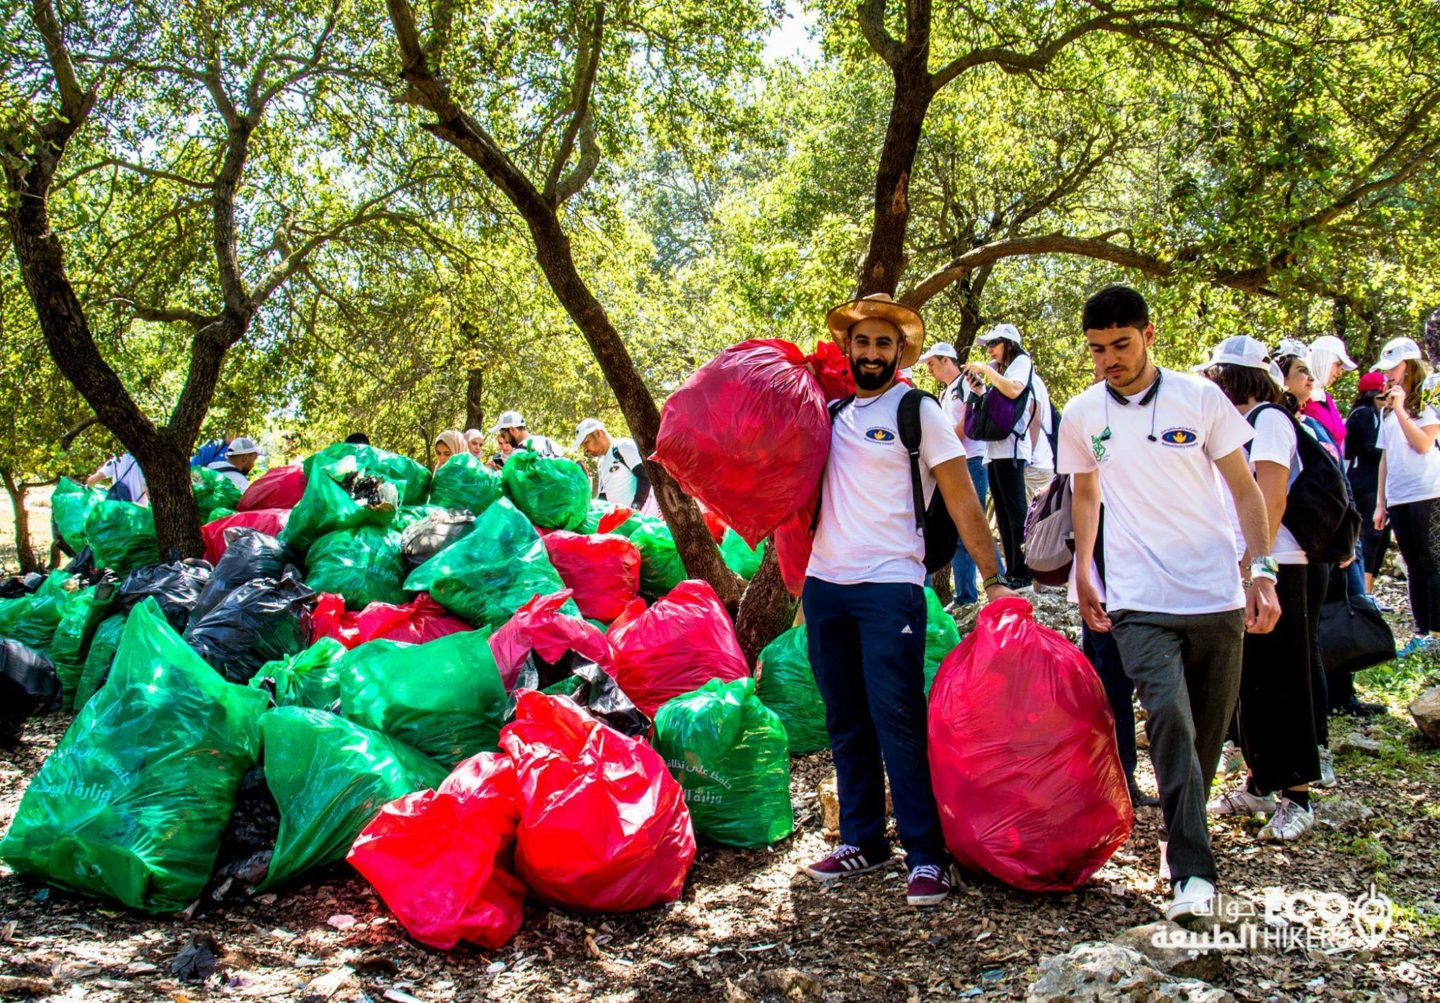 You can now collect trash as you eco-hike through Jordan's beautiful nature | The Switchers